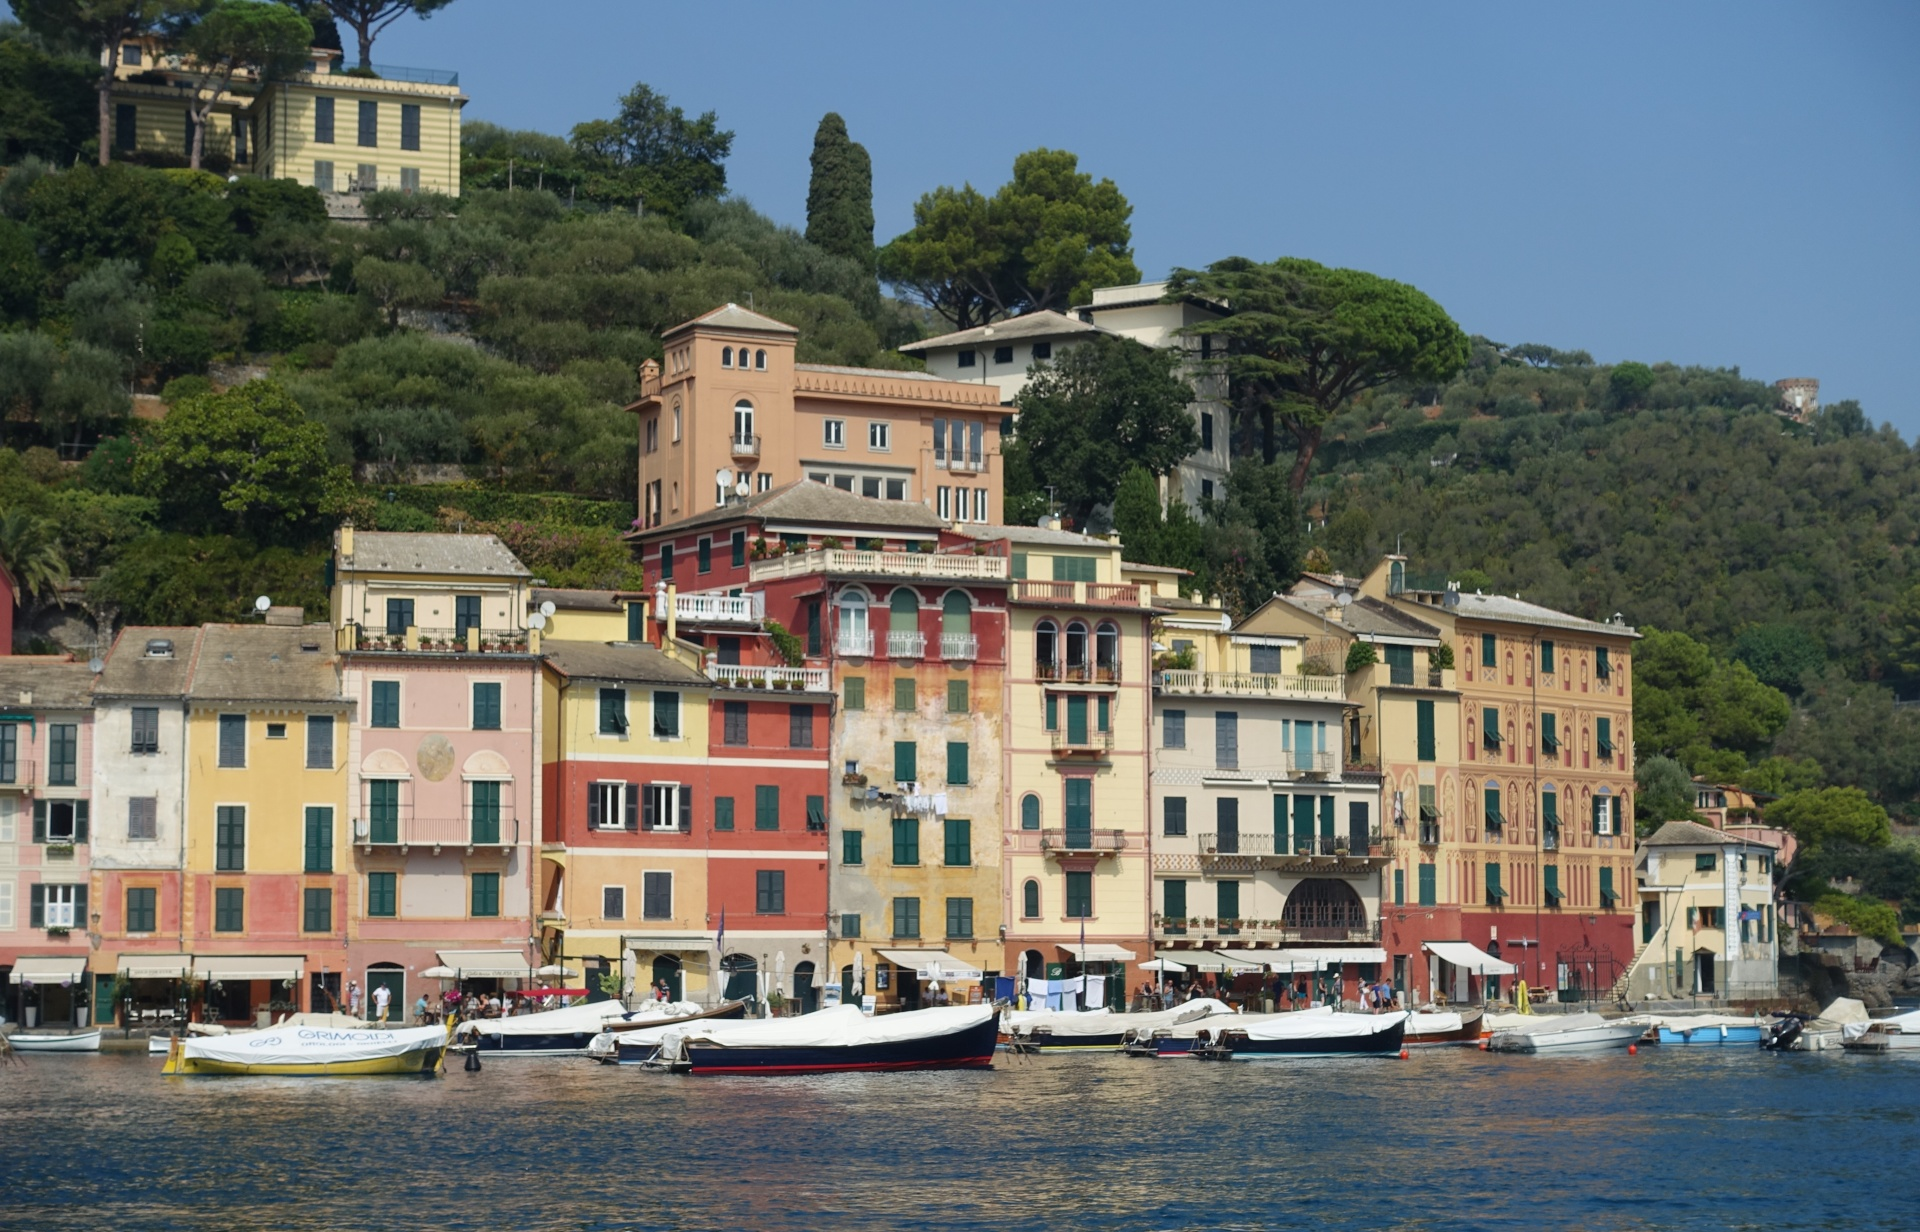 Waterfront Houses of Portofino